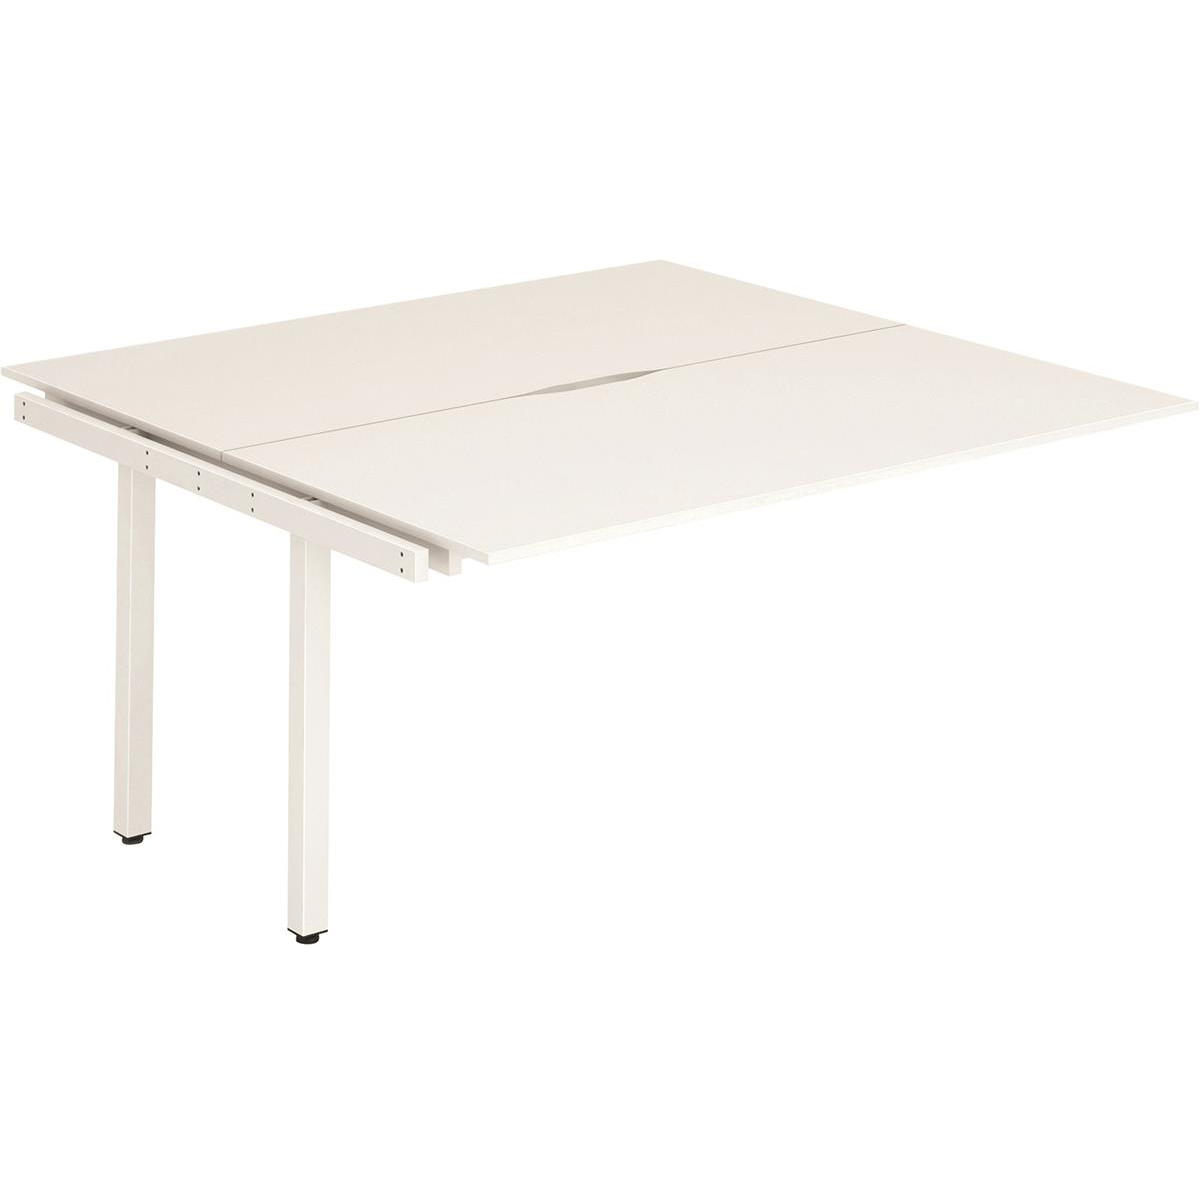 Trexus Bench Desk Double Extension Back to Back Configuration White Leg 1400x1600mm White Ref BE195